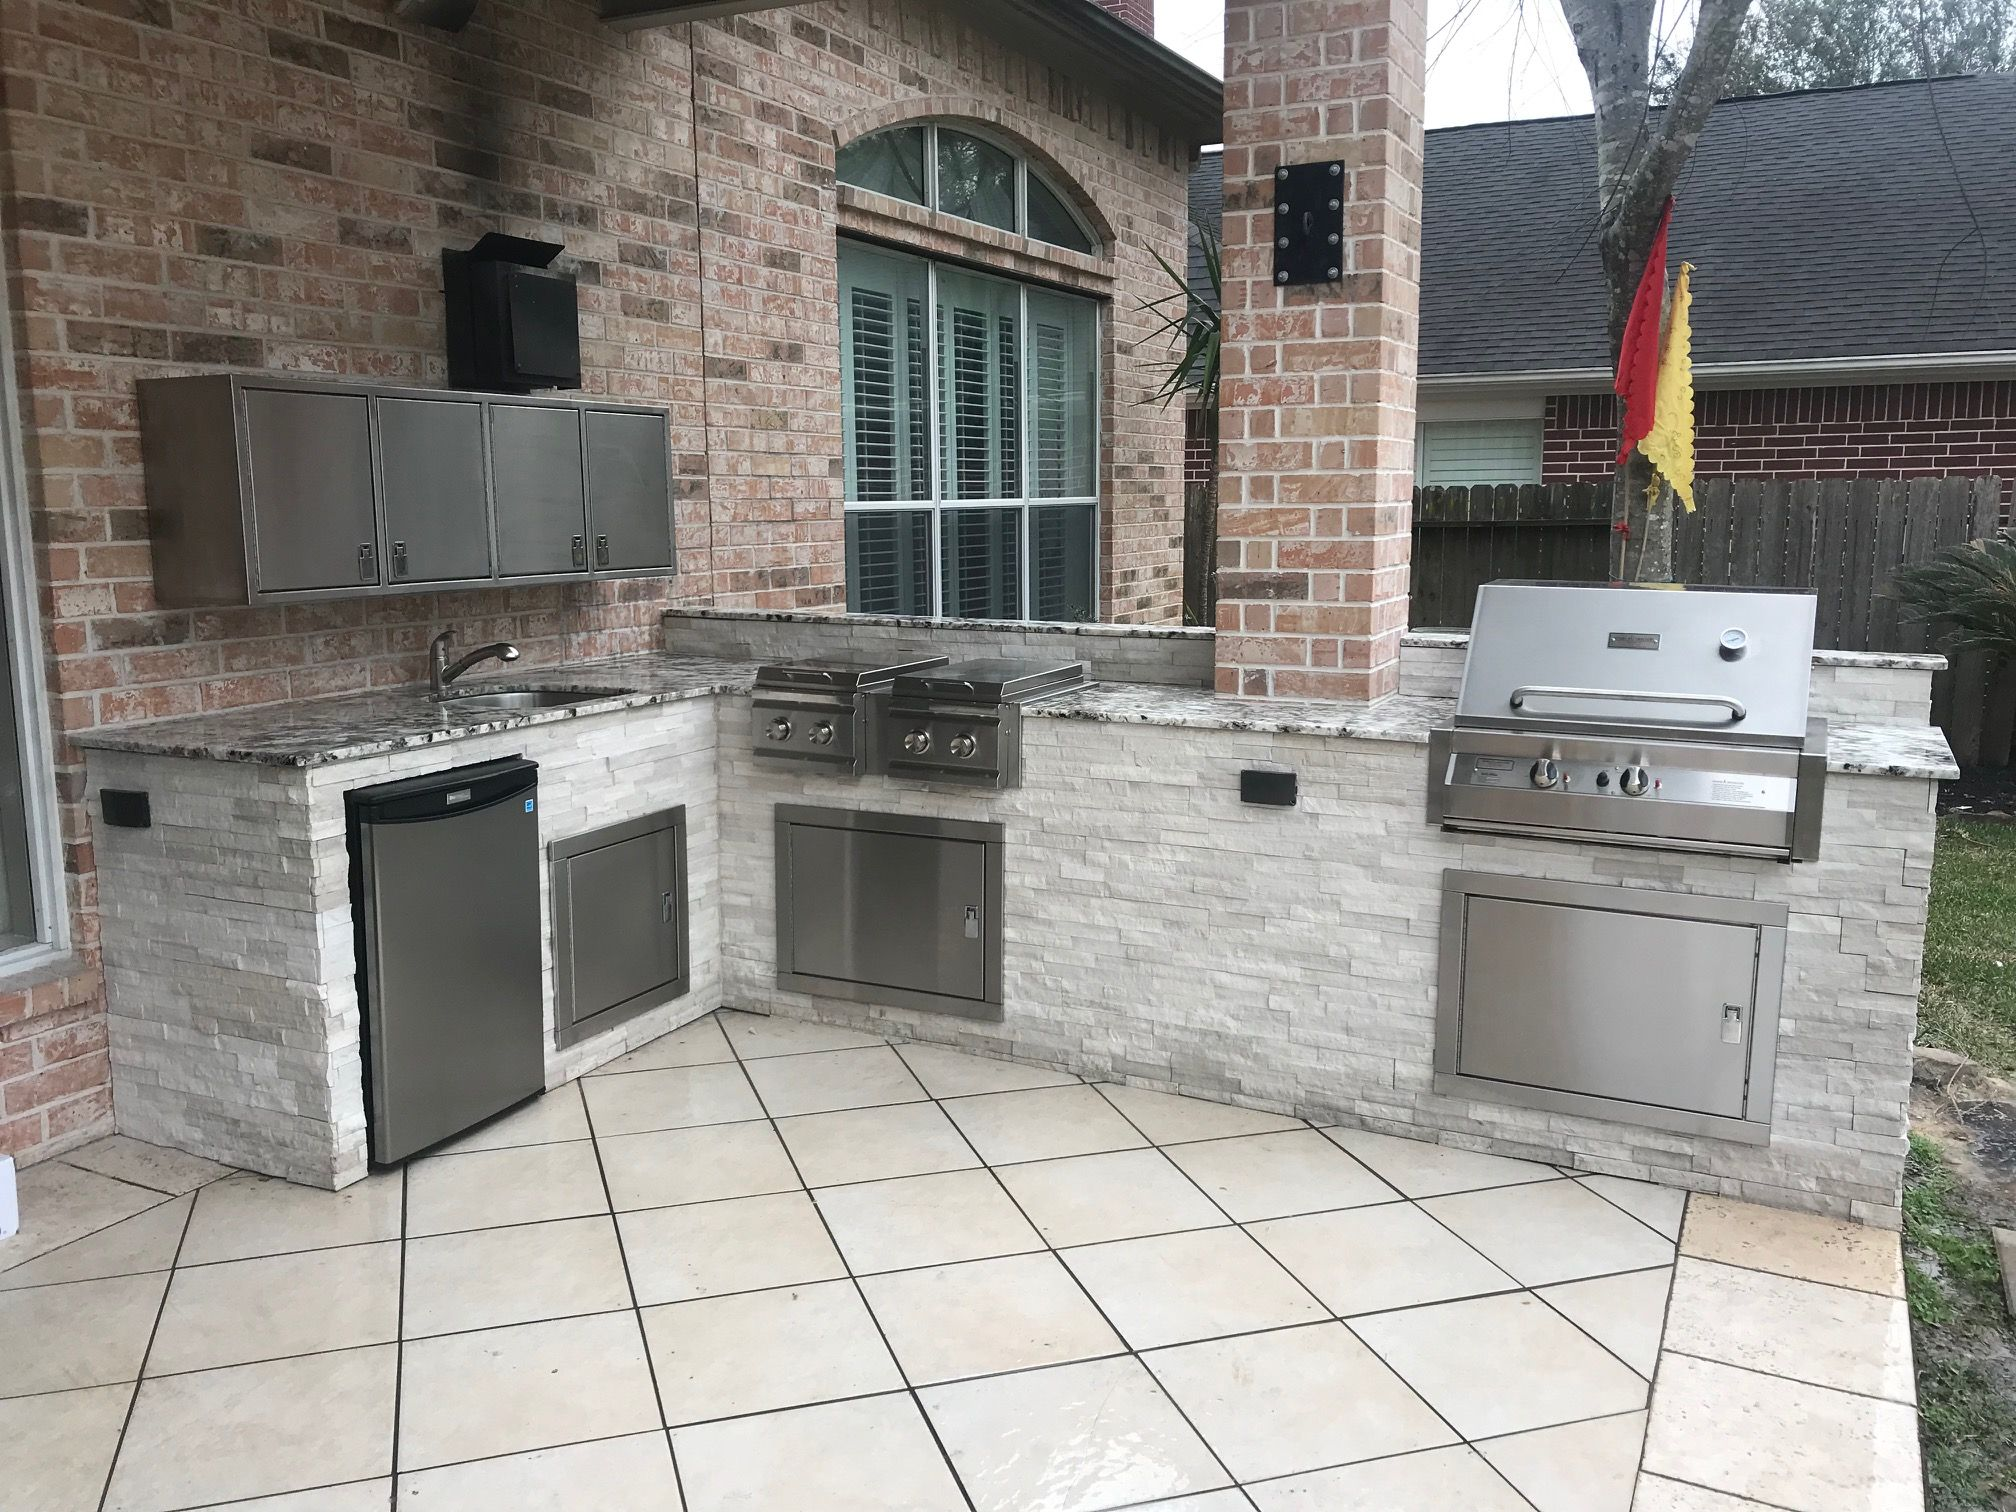 Custom Outdoor Kitchen Stone And Granite Used Custom Handmade Grills And Stainless Steel Storage Used As Wel Barbecue Pit Outdoor Kitchen Beautiful Kitchens